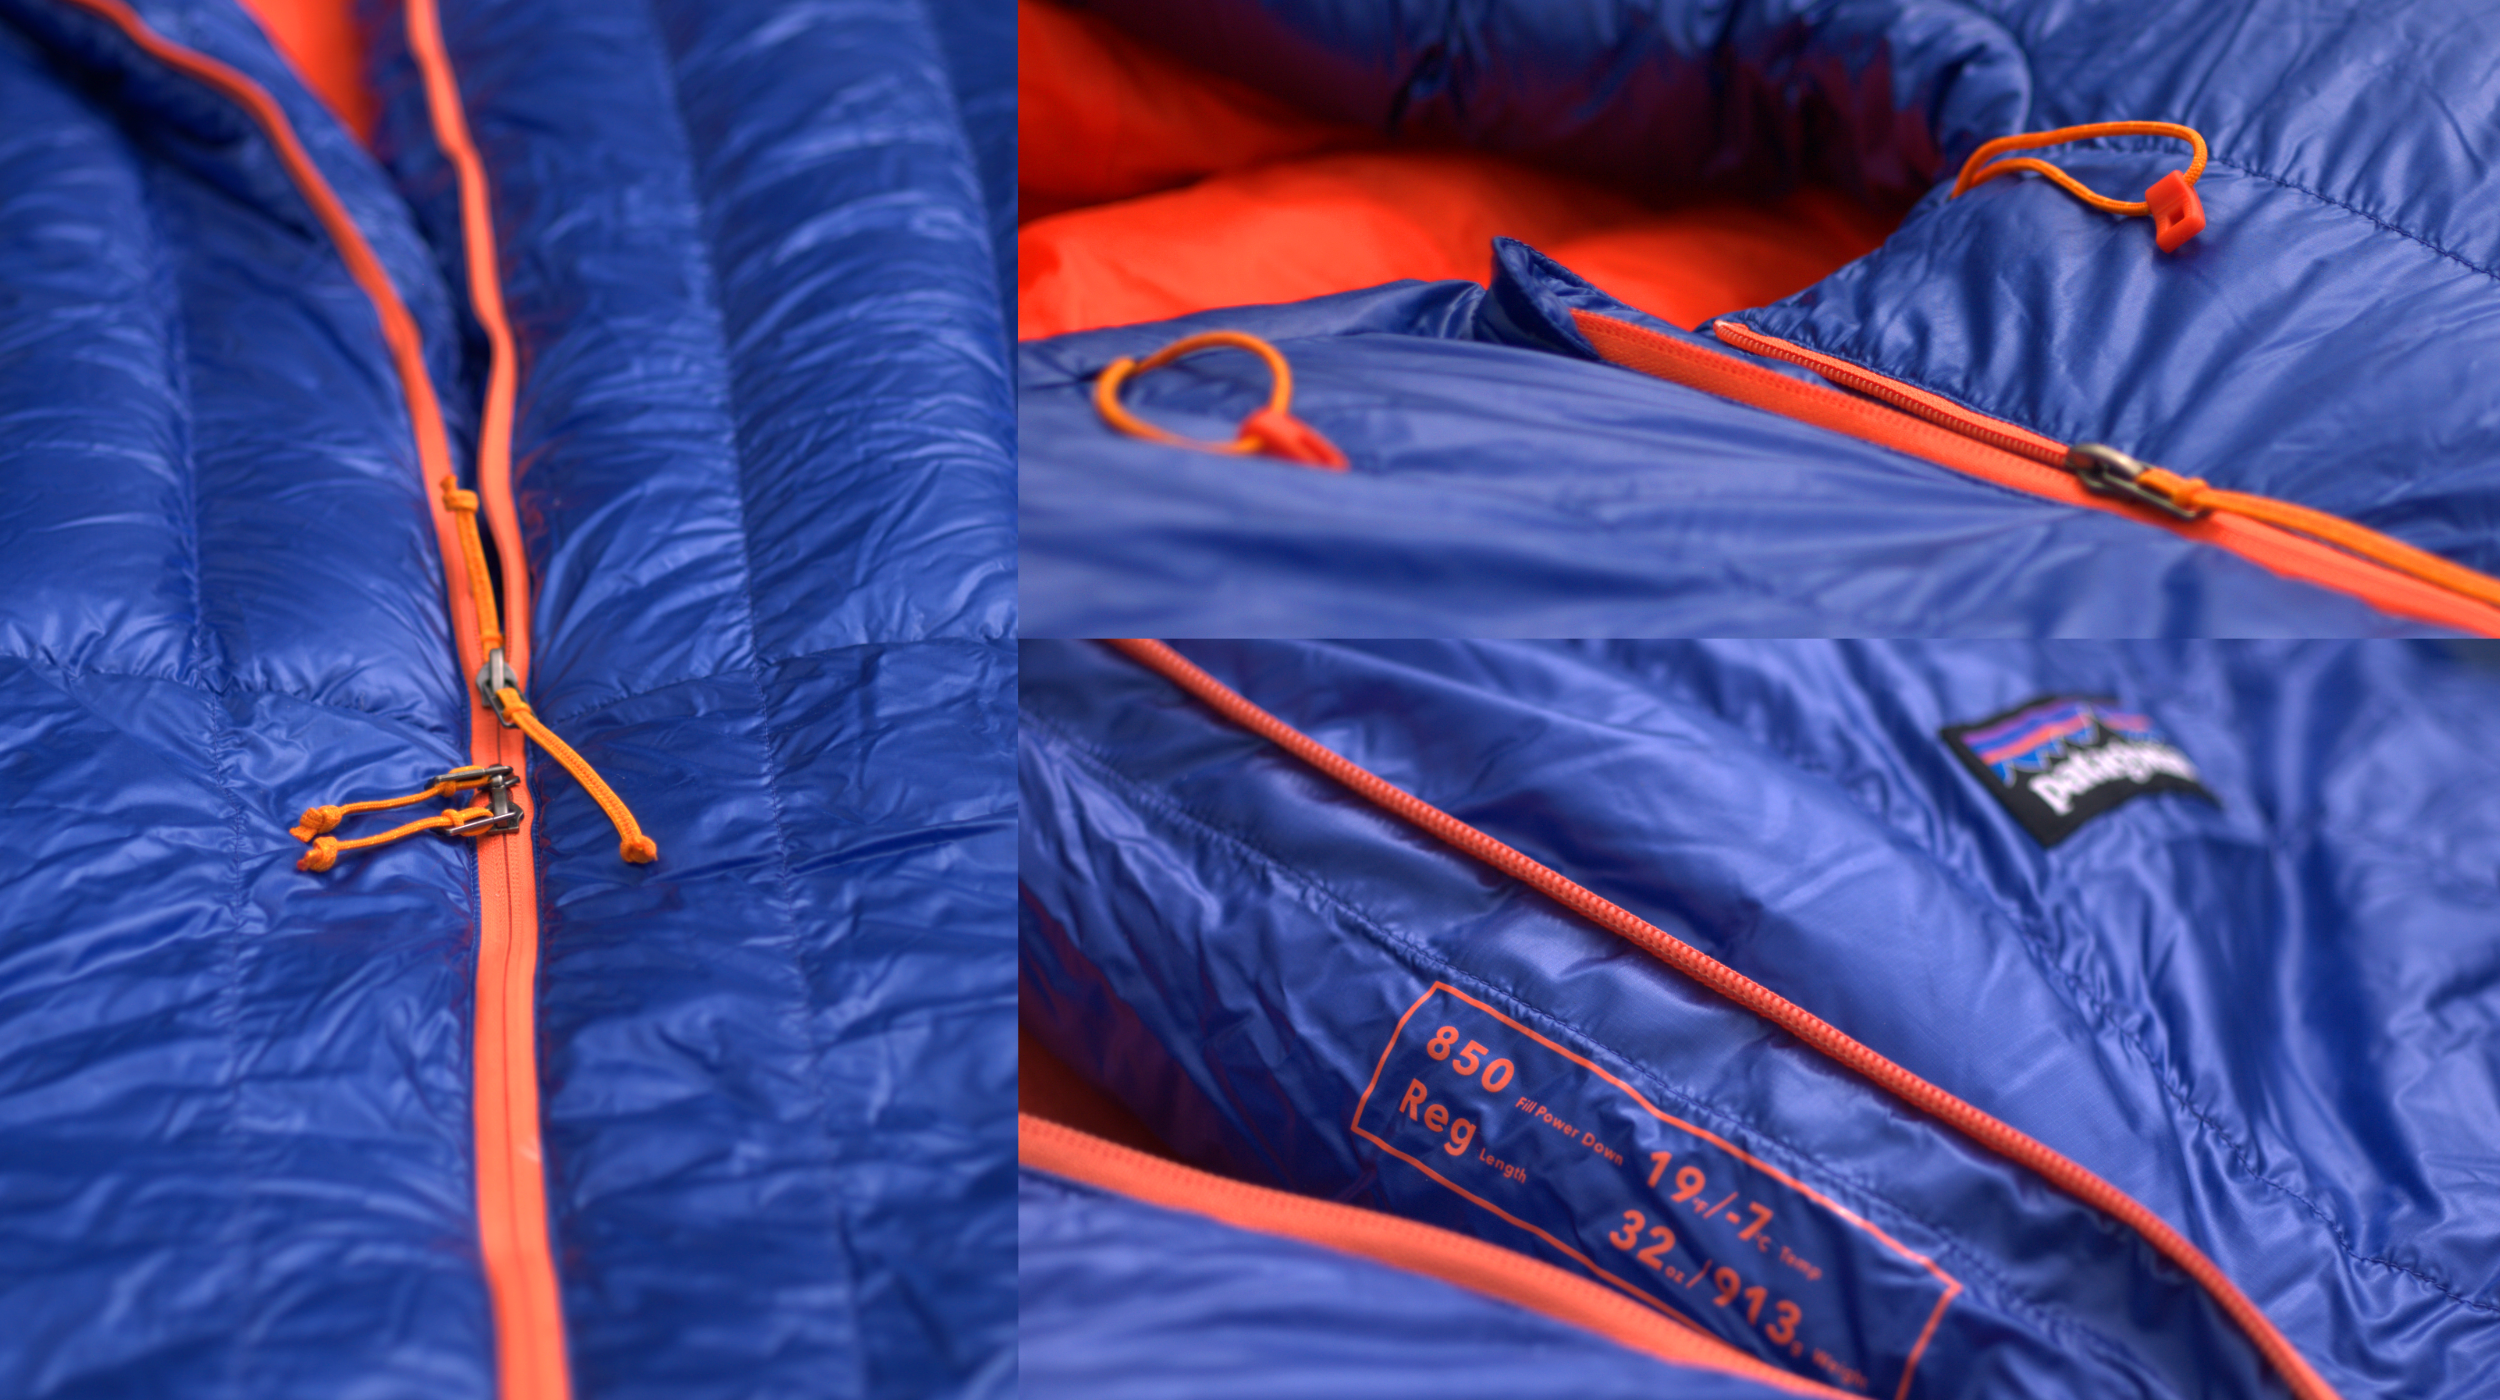 Patagonia 850 Down Sleeping Bag Review